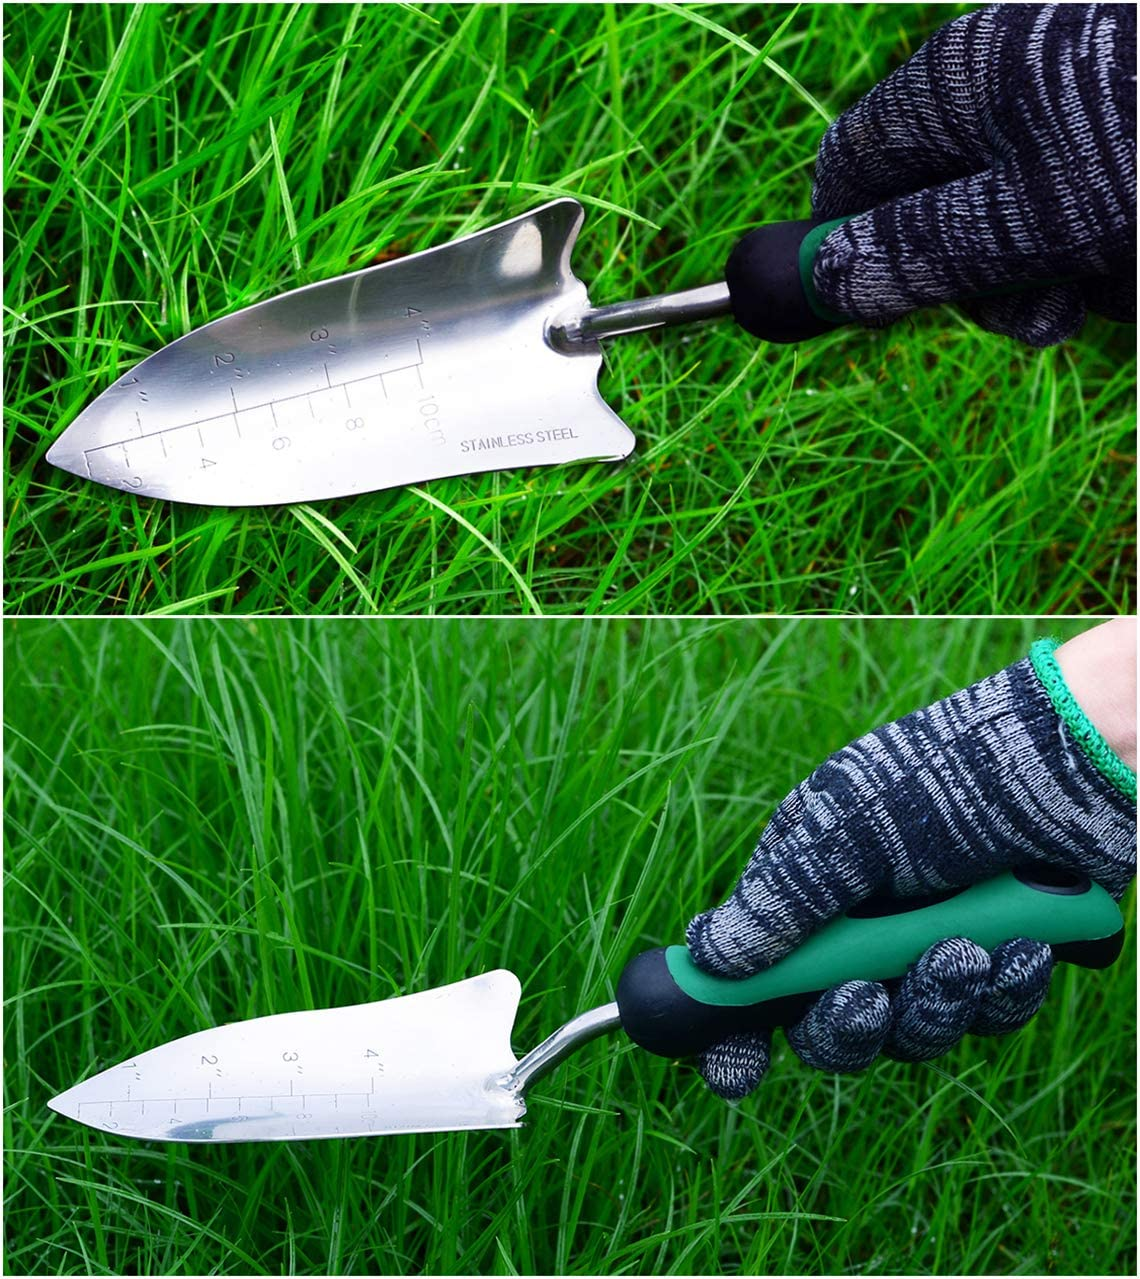 Heavy Duty Polished Stainless Steel,BES for Transplanting Depth Marker Measurements Weeding Moving and Smoothing Digging /& Planting Soft Power Garden Trowel Ergonomic